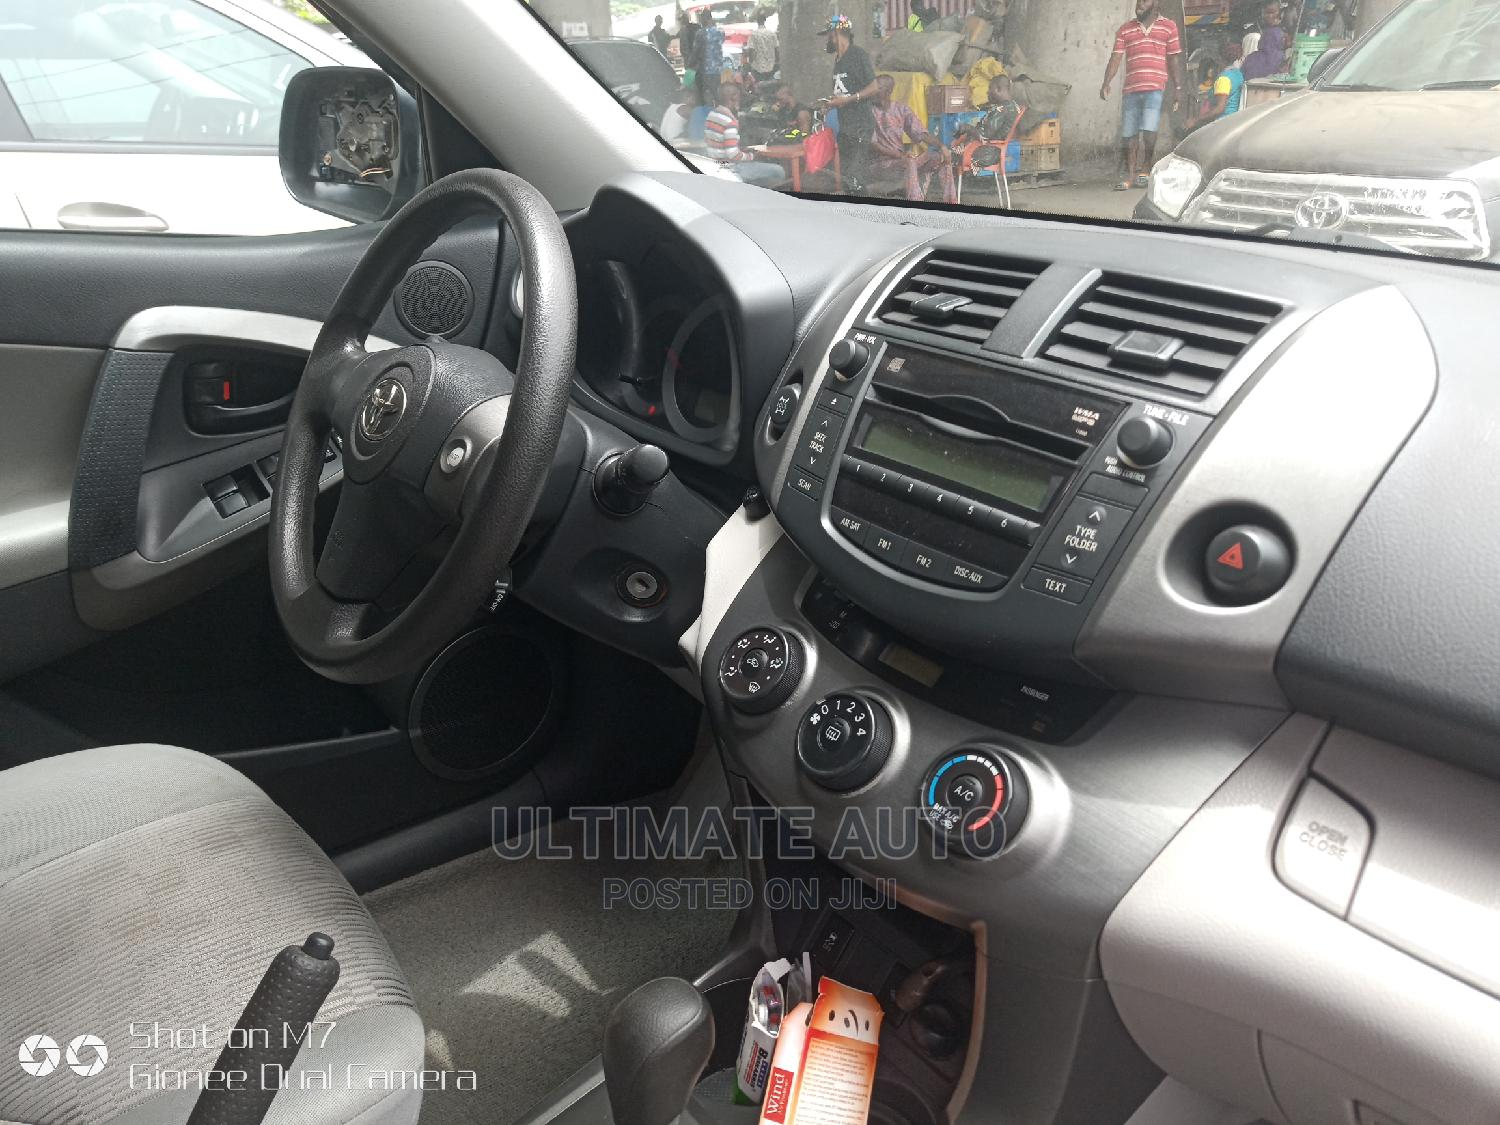 Toyota RAV4 2010 3.5 Limited 4x4 Blue   Cars for sale in Apapa, Lagos State, Nigeria